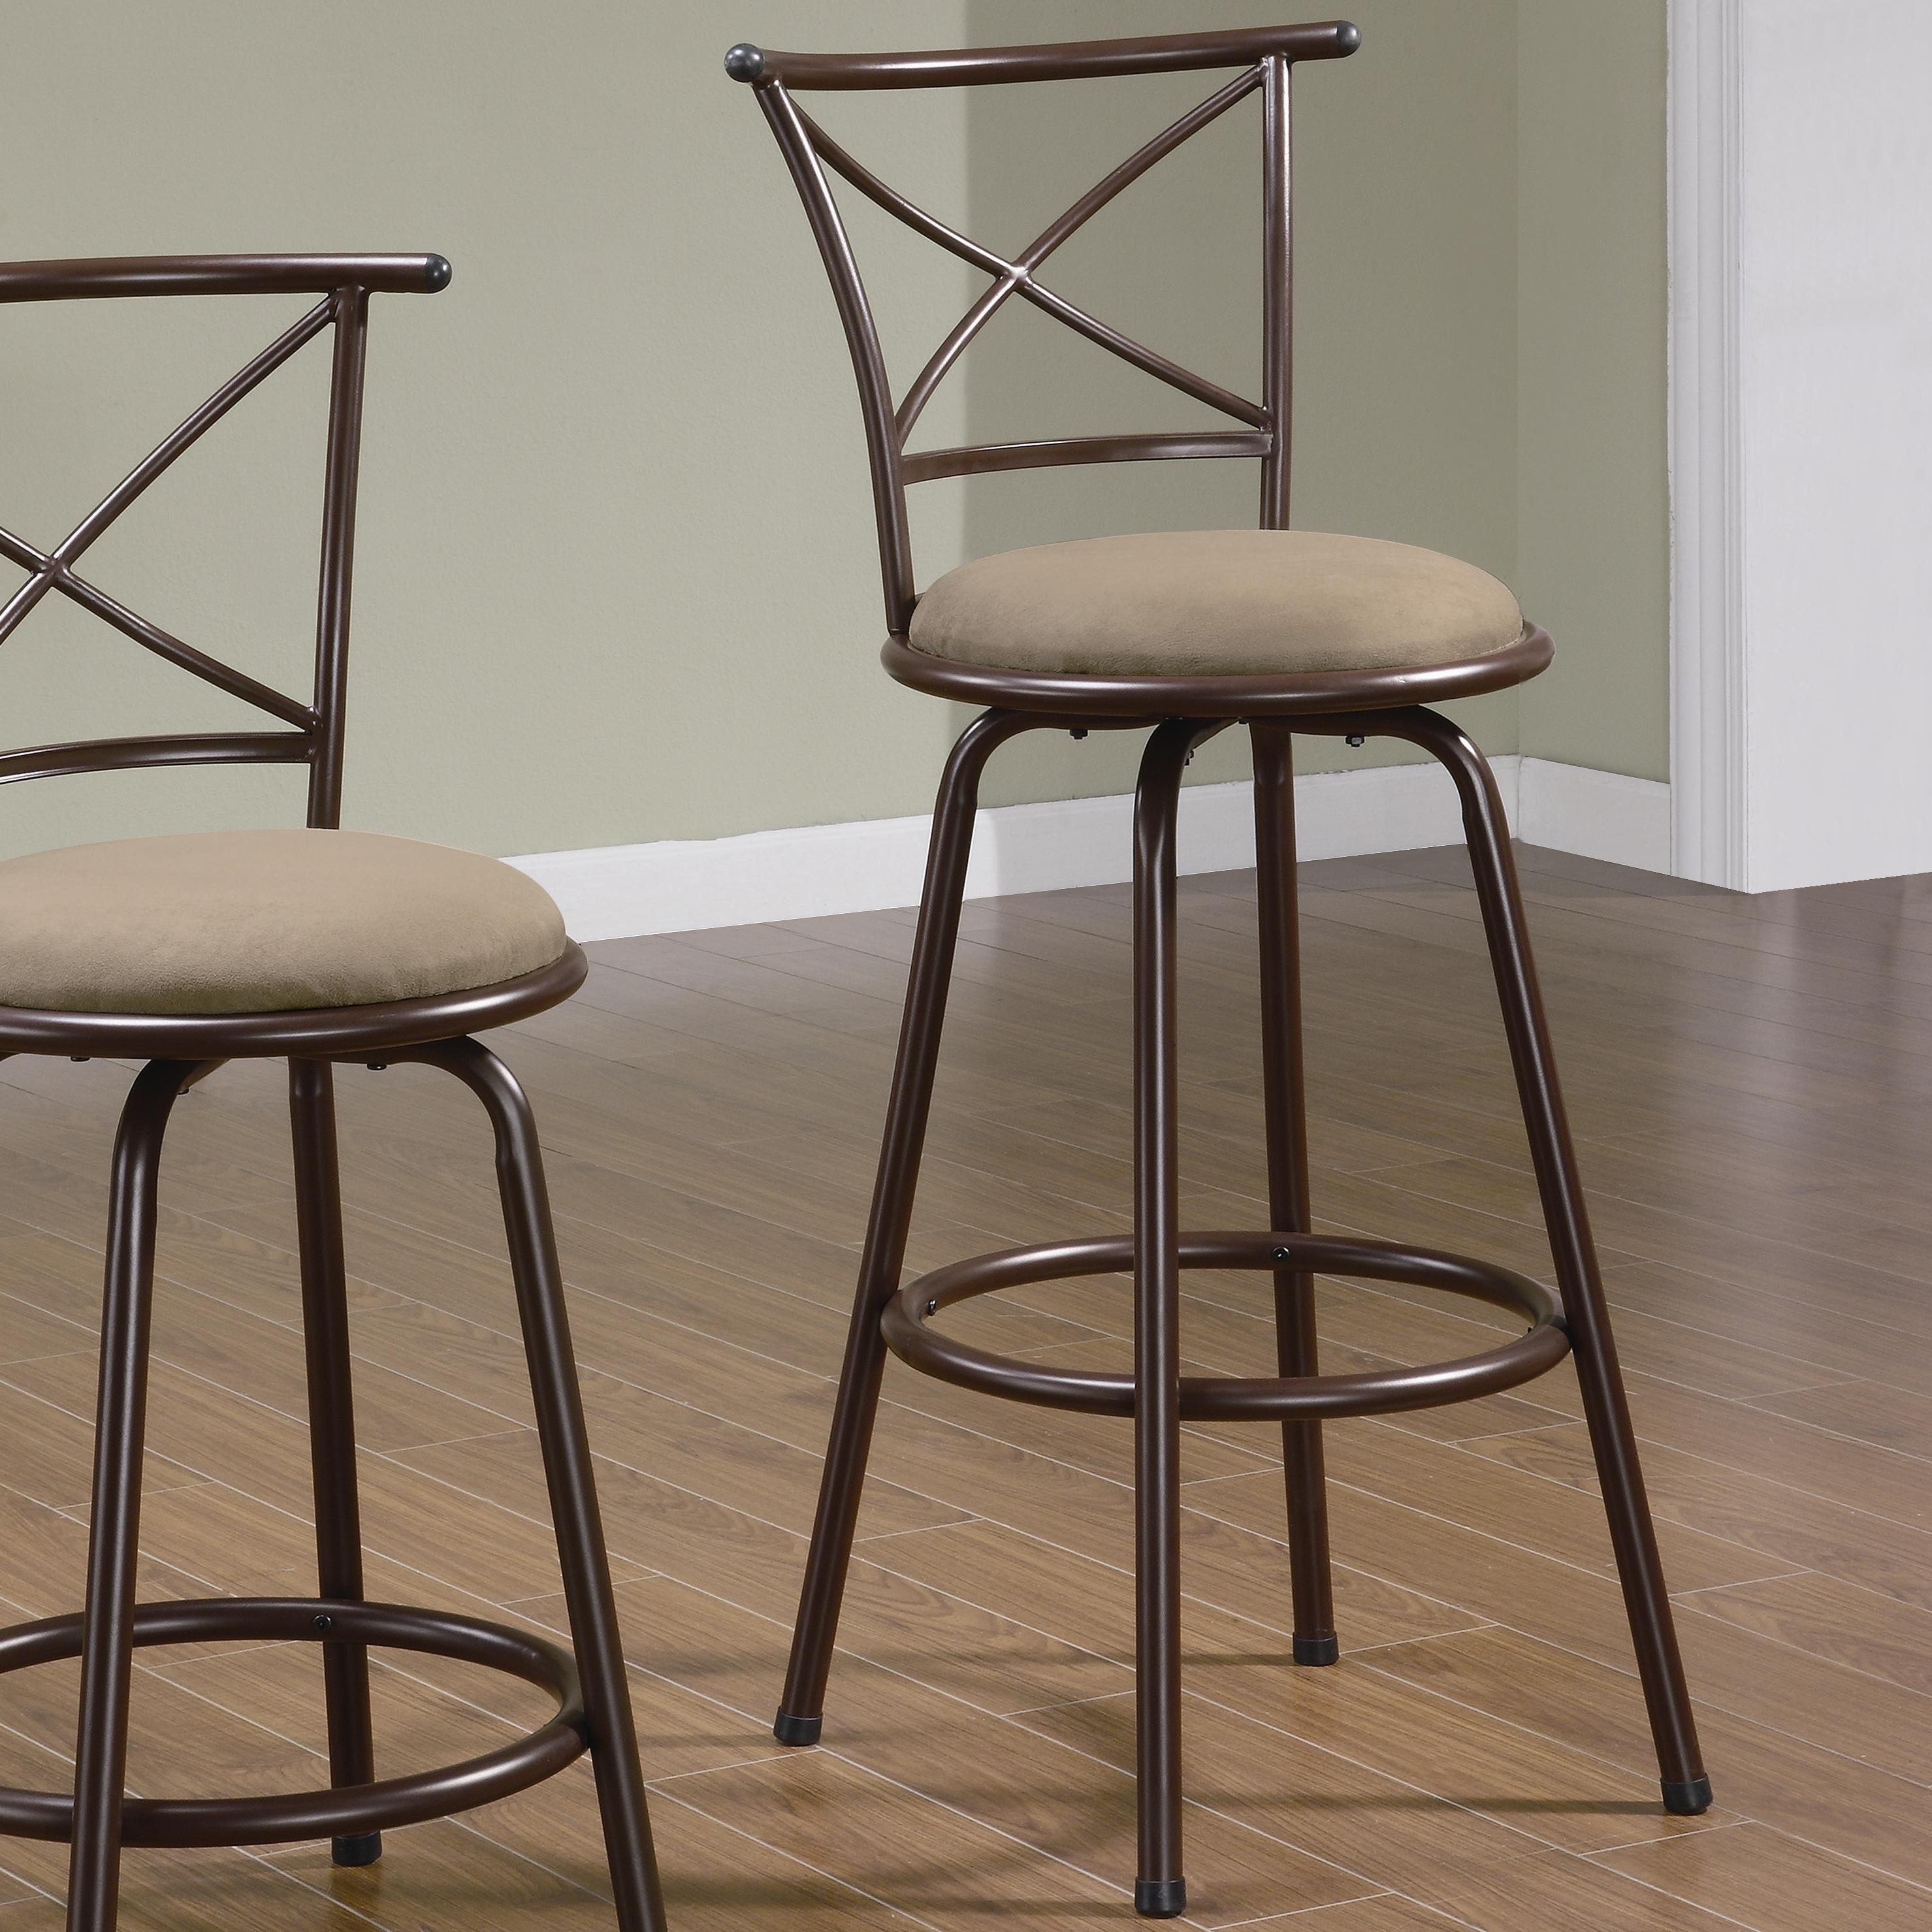 "Coaster Dining Chairs and Bar Stools 29"" Metal Bar Stool - Item Number: 122030"